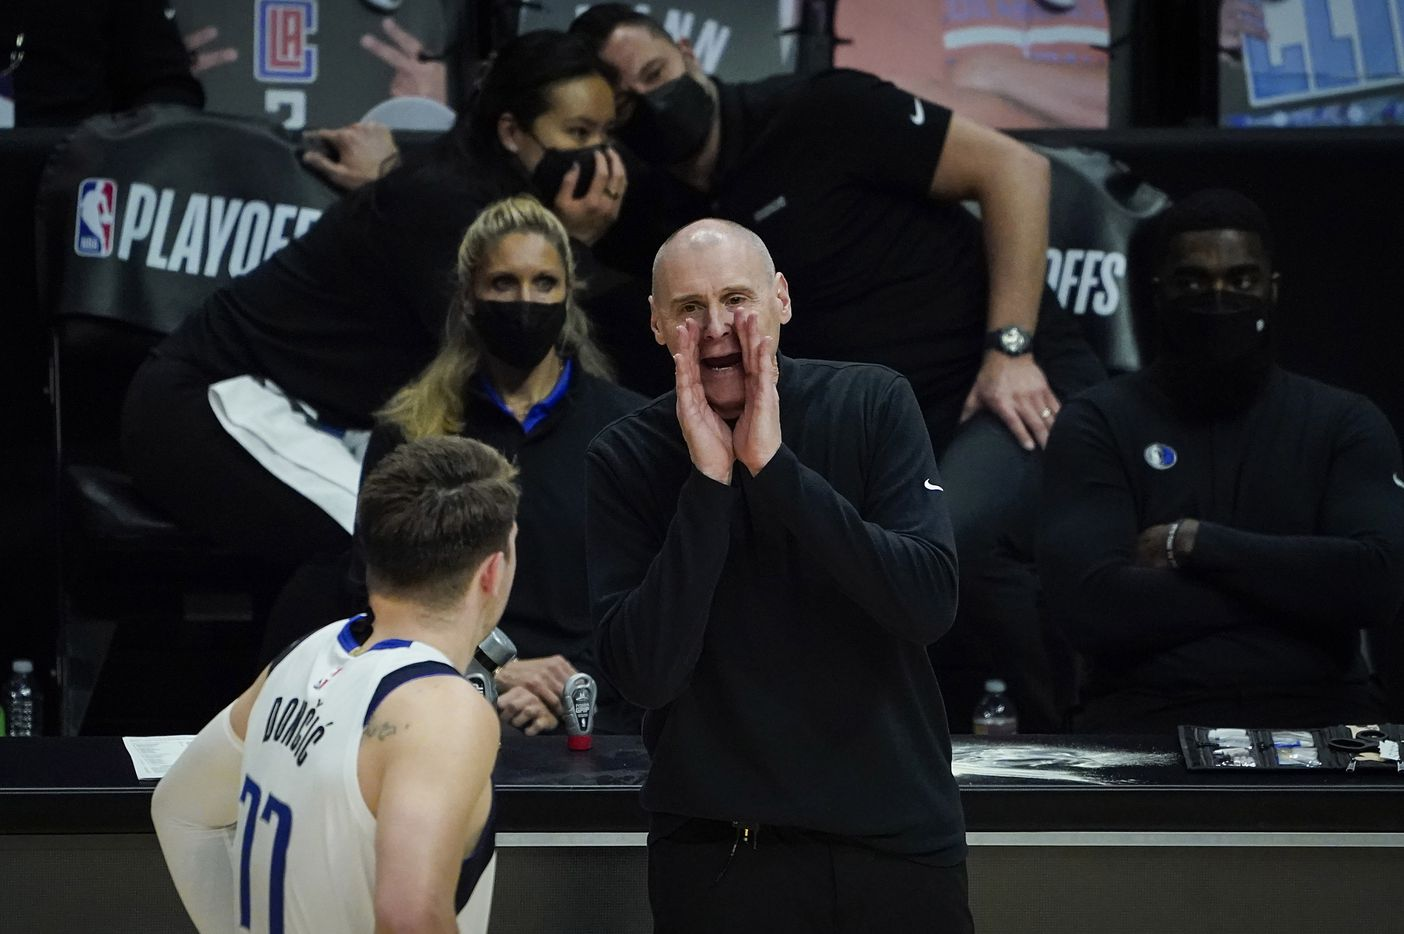 Dallas Mavericks head coach Rick Carlisle gives directions to guard Luka Doncic during the fourth quarter of an NBA playoff basketball game against the LA Clippers at the Staples Center on Wednesday, June 2, 2021, in Los Angeles. The Mavericks won the game 105-100. (Smiley N. Pool/The Dallas Morning News)